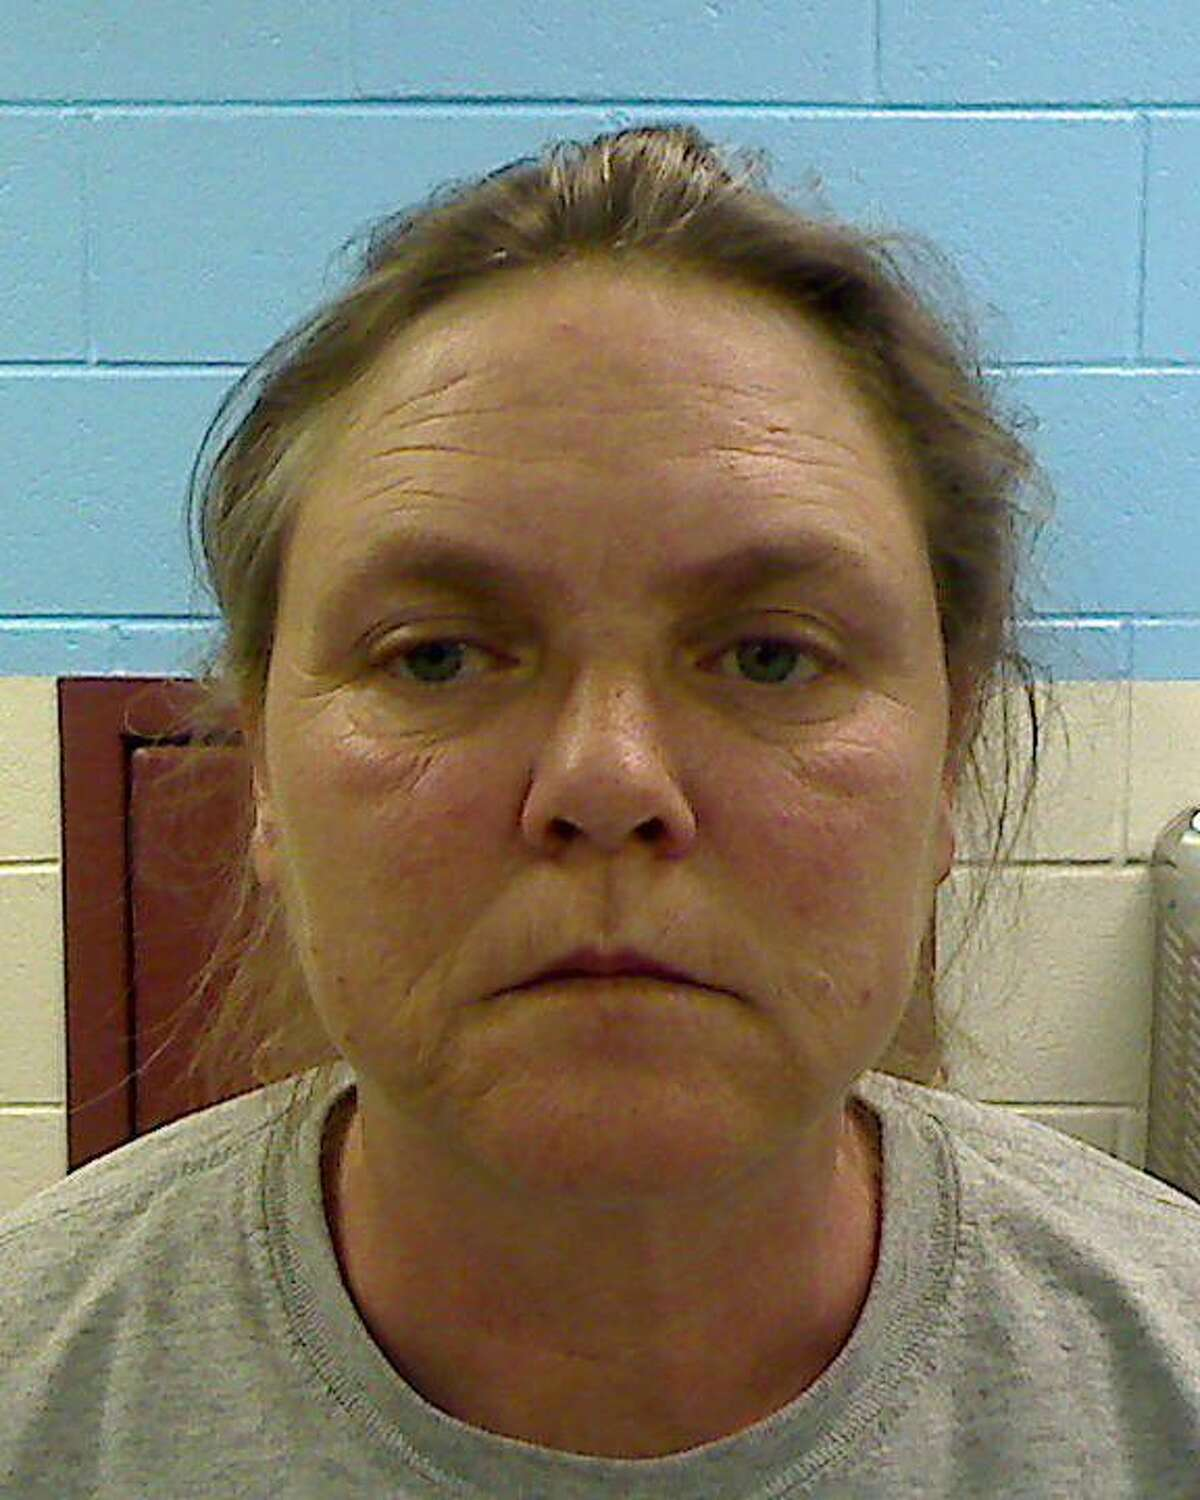 FILE - This file photo released by the Etowah County Sheriff's Dept. on Wednesday, Feb. 22, 2012 shows Joyce Hardin Garrard, 46. A jury convicted 49-year-old Joyce Hardin Garrard late Friday March 20. 2015 in the February 2012 death of Savannah Hardin, siding with prosecutors who depicted Garrard as a